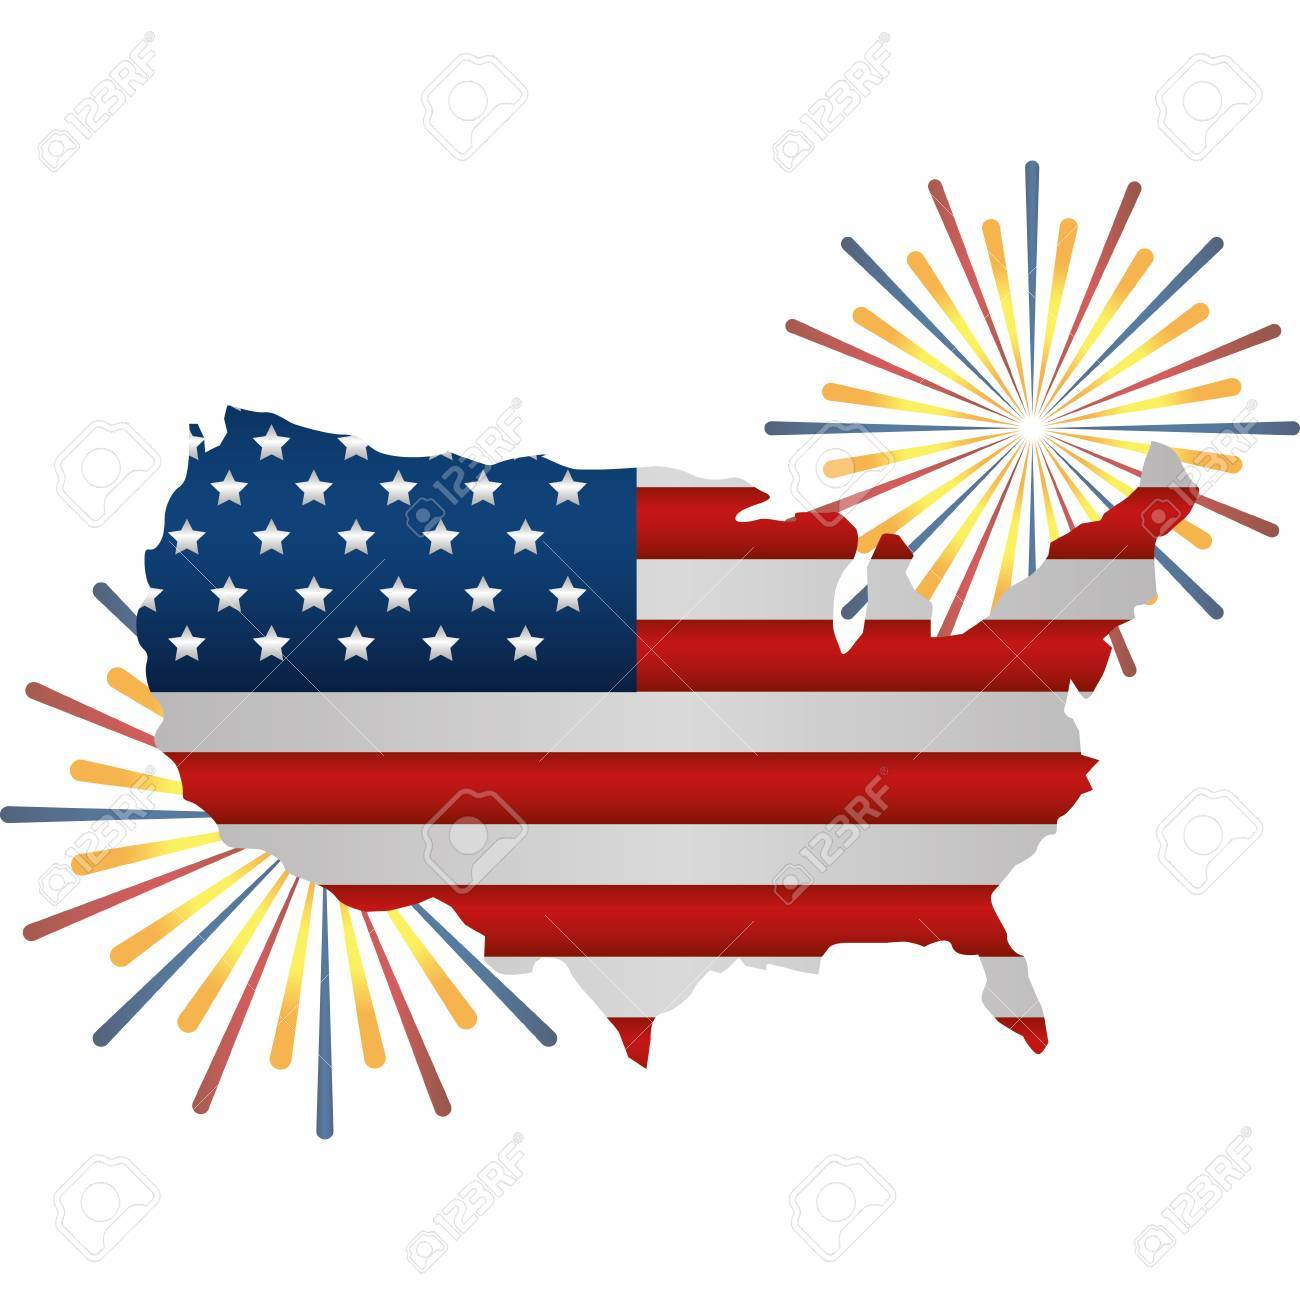 United states of america map with flag and fireworks » Clipart Portal.